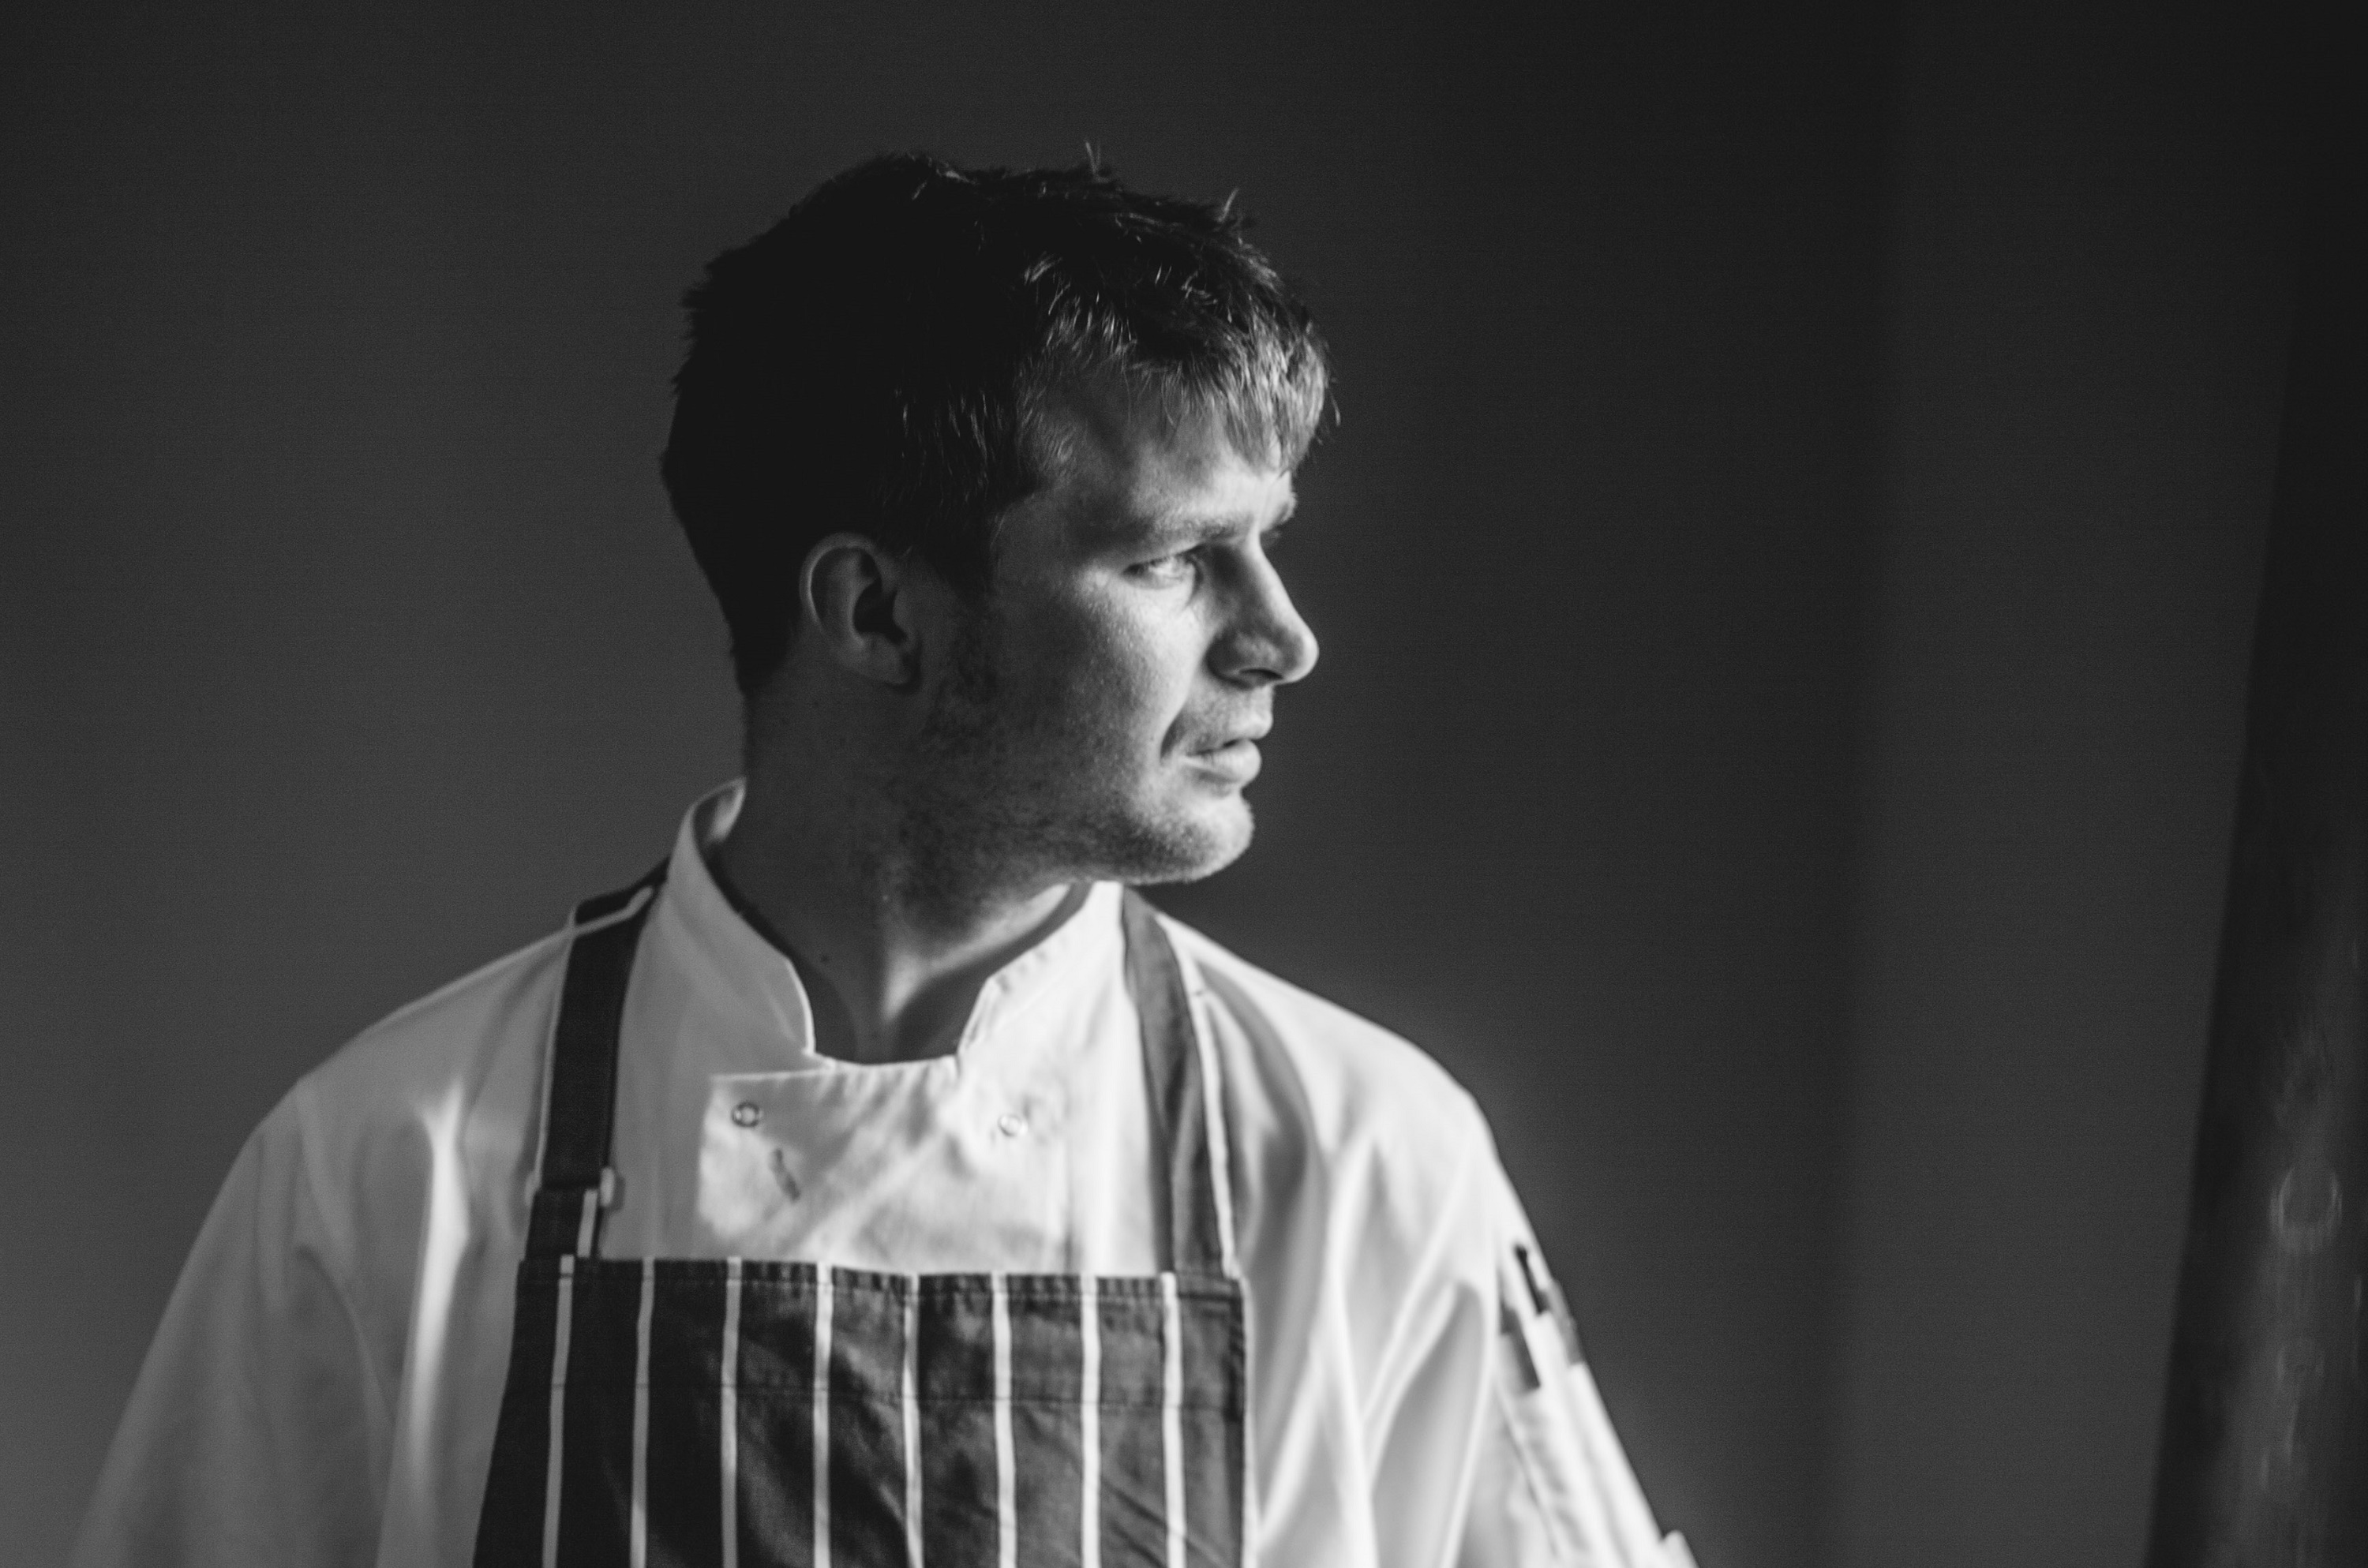 Head Chef - Alistair Merrey